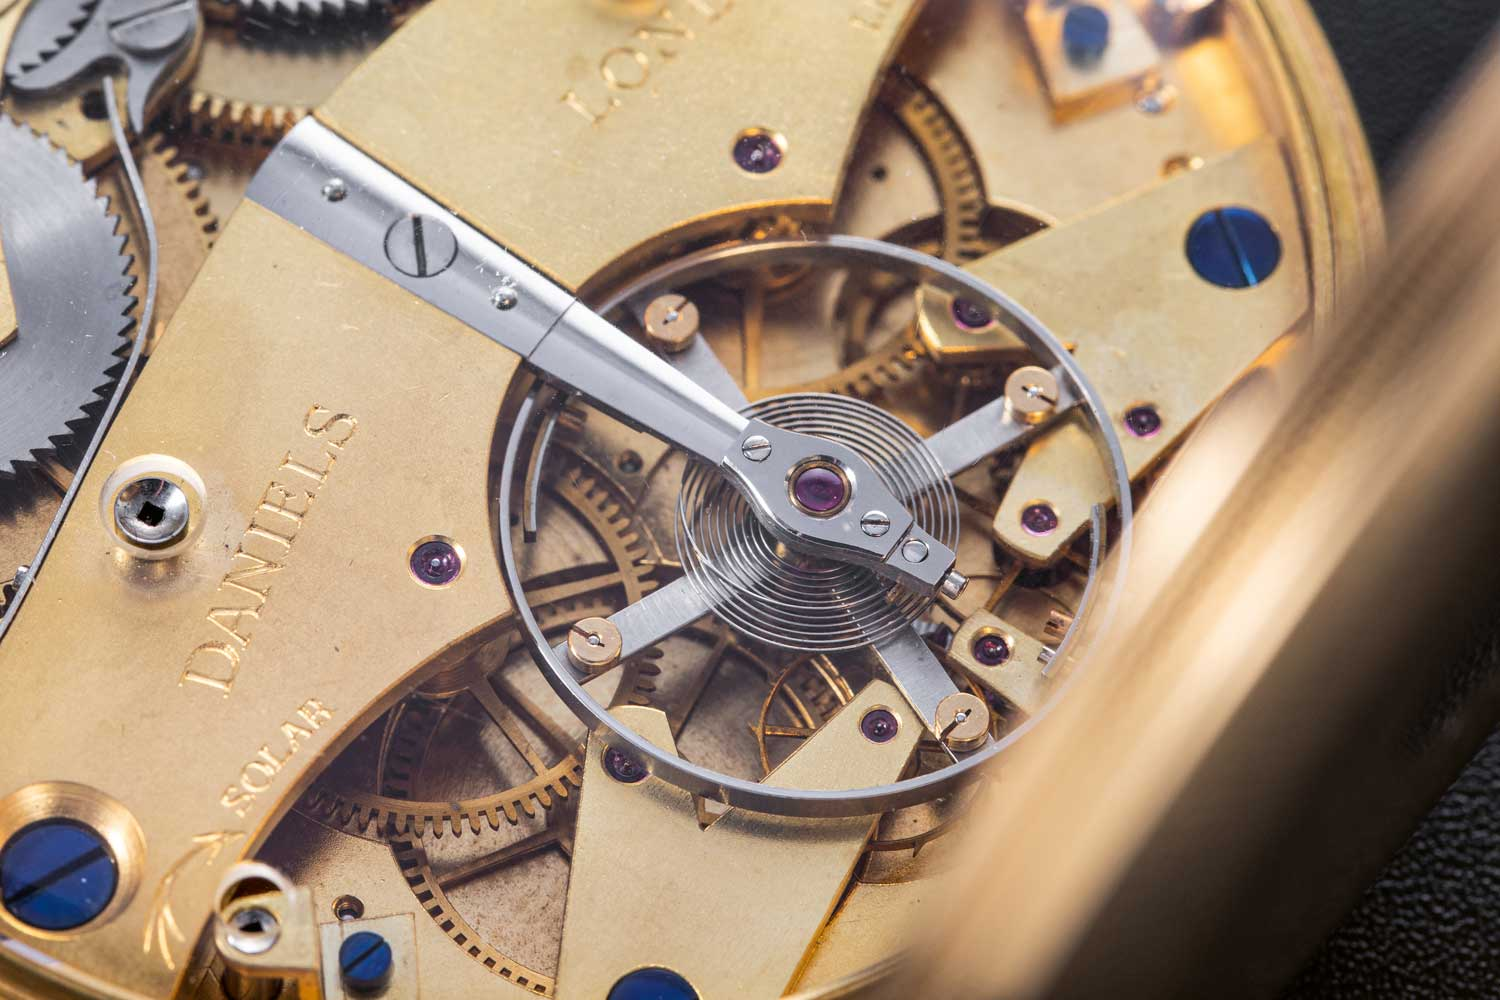 The double-wheel chronometer escapement in the Space Traveller (Image: The Hour Glass)